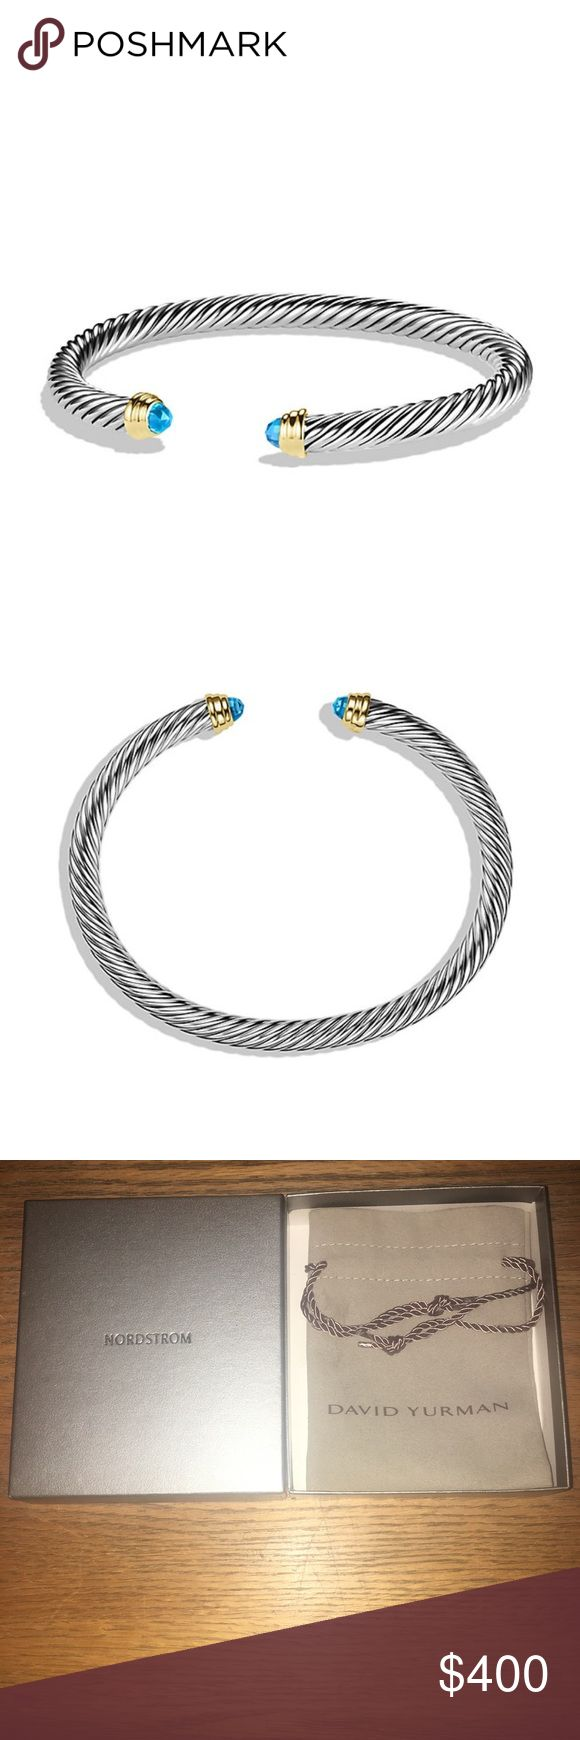 David Yurman Cable Classics Bracelet Cuff 5mm Cable Classics Bracelet with Aquamarine and 14K Gold, 4MM.  DY 925 585.  Preloved sparingly.  Well taken care of.  Purchased at Nordtroms department store.  Will come in original slip and silver box as pictured. David Yurman Jewelry Bracelets